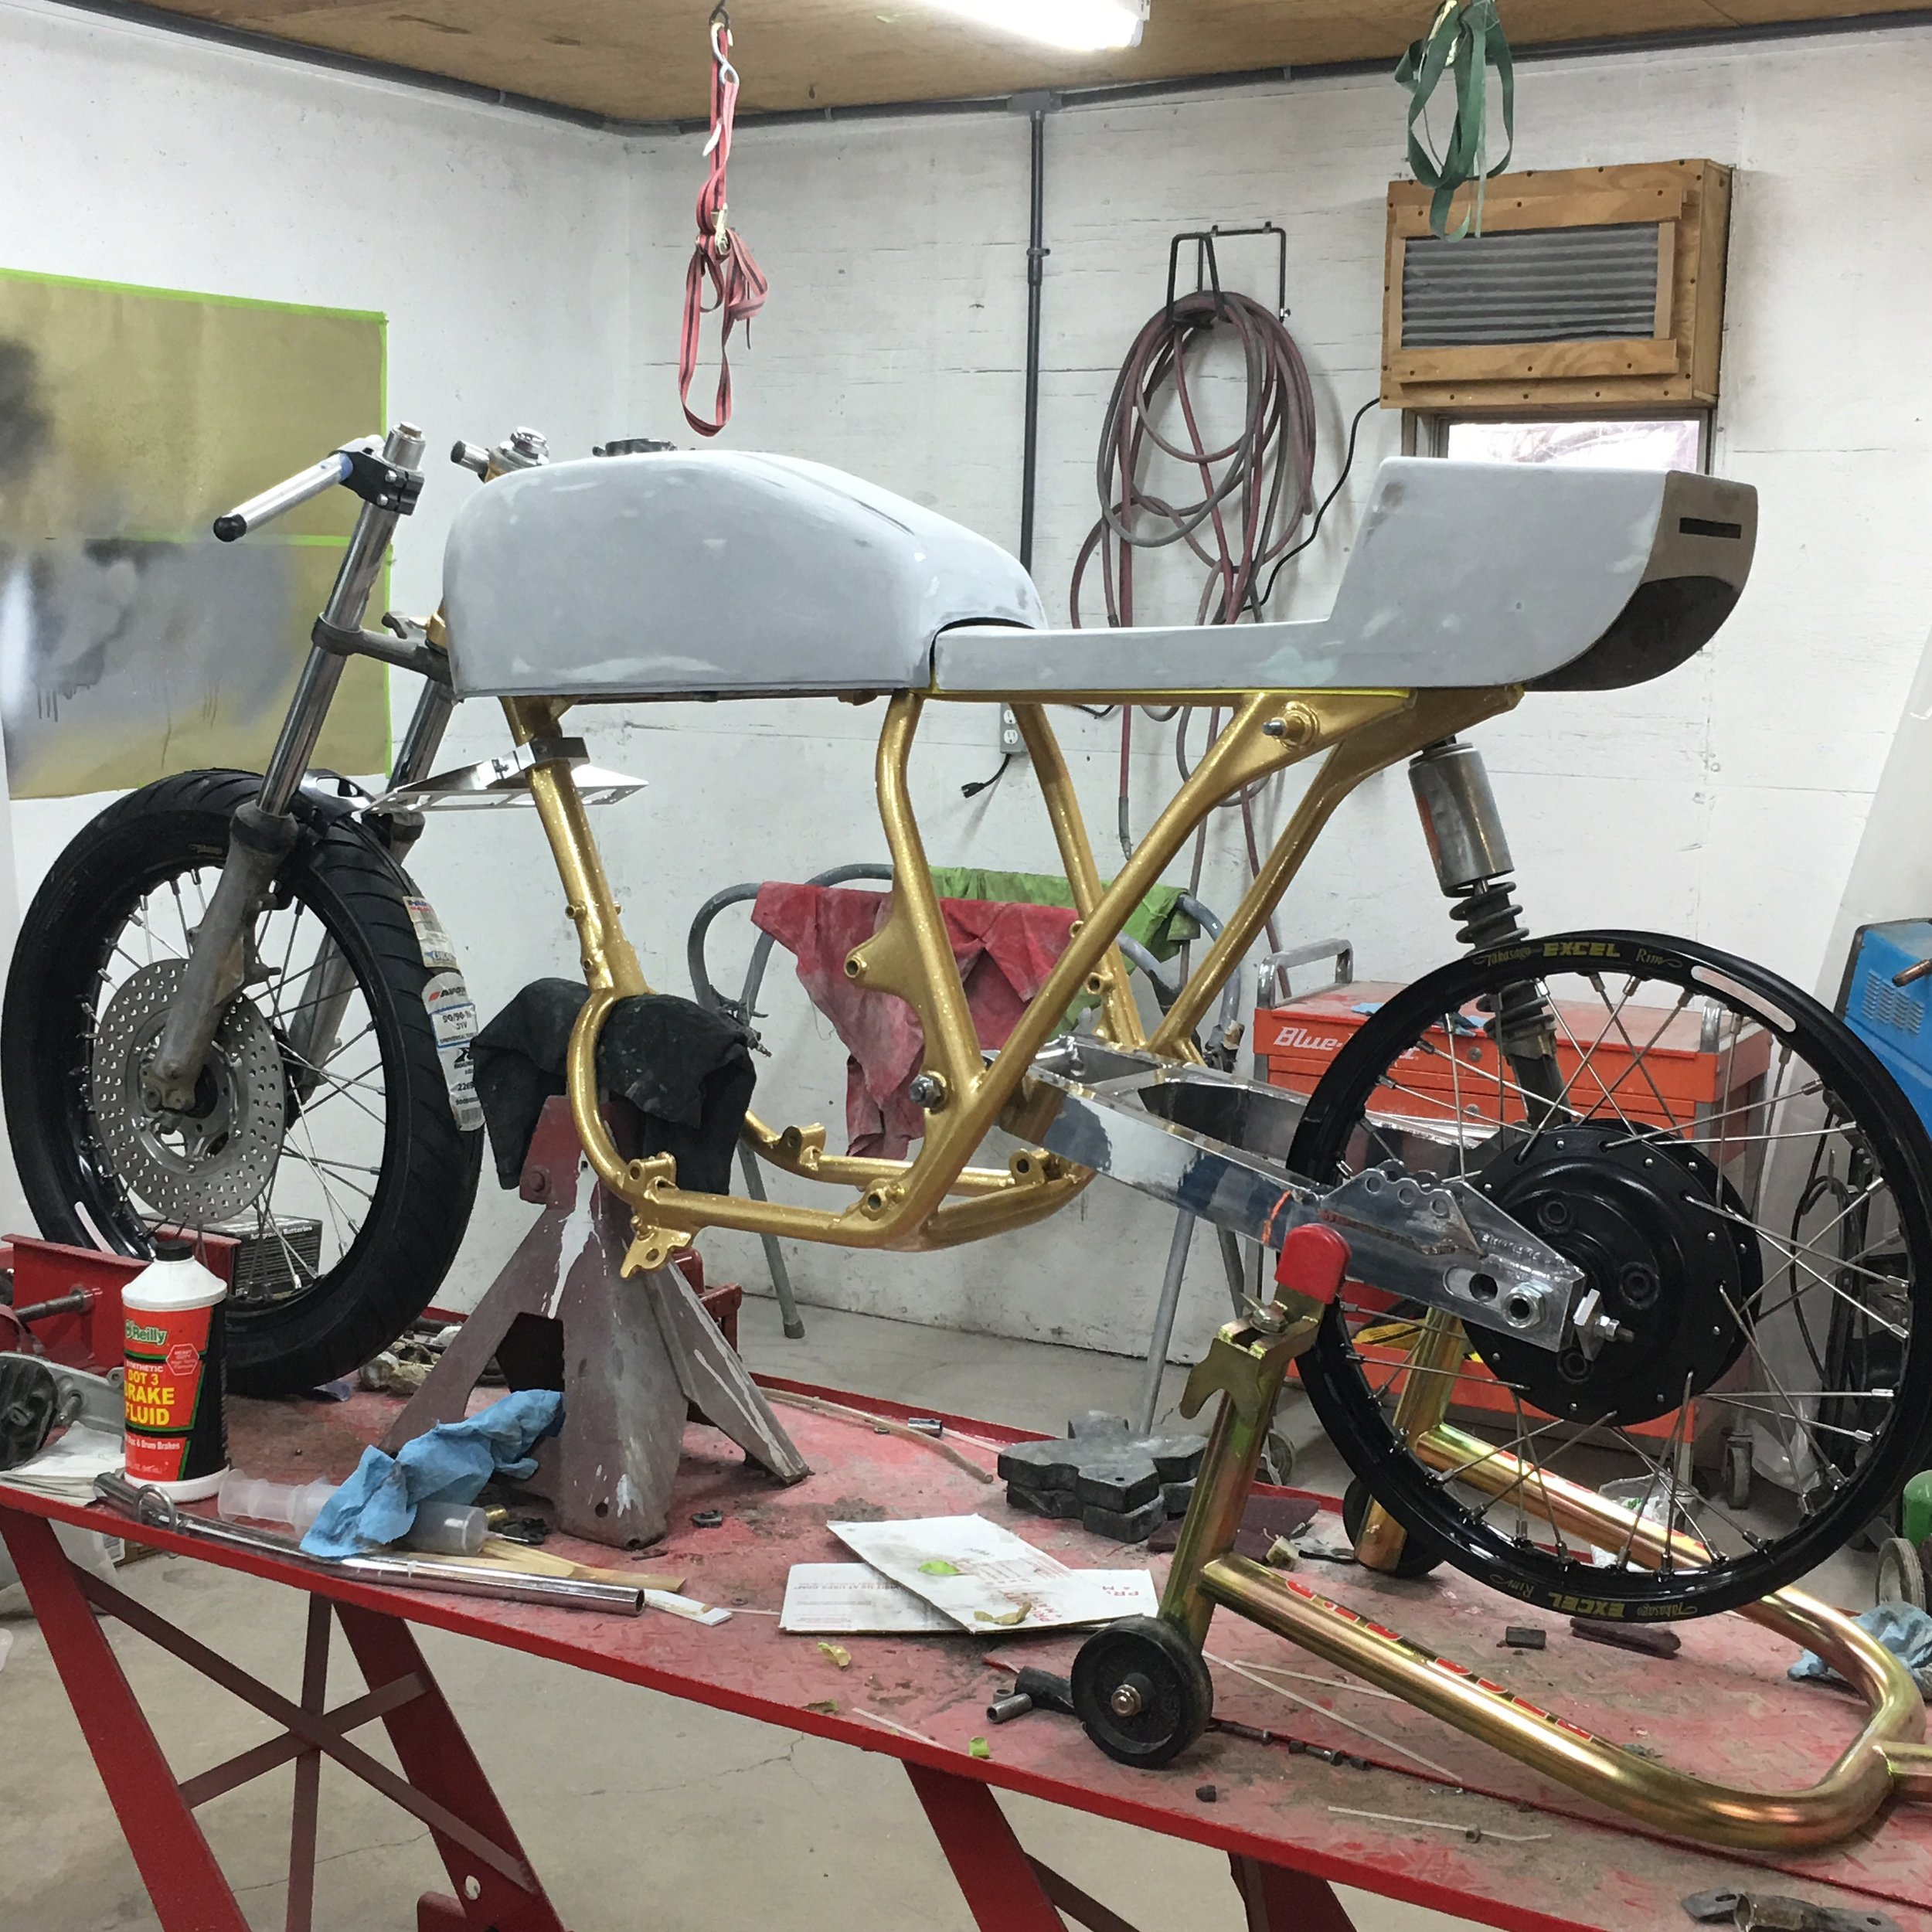 With a rolling chassis, the excitement really grows.  It will be a finished motorcycle soon!